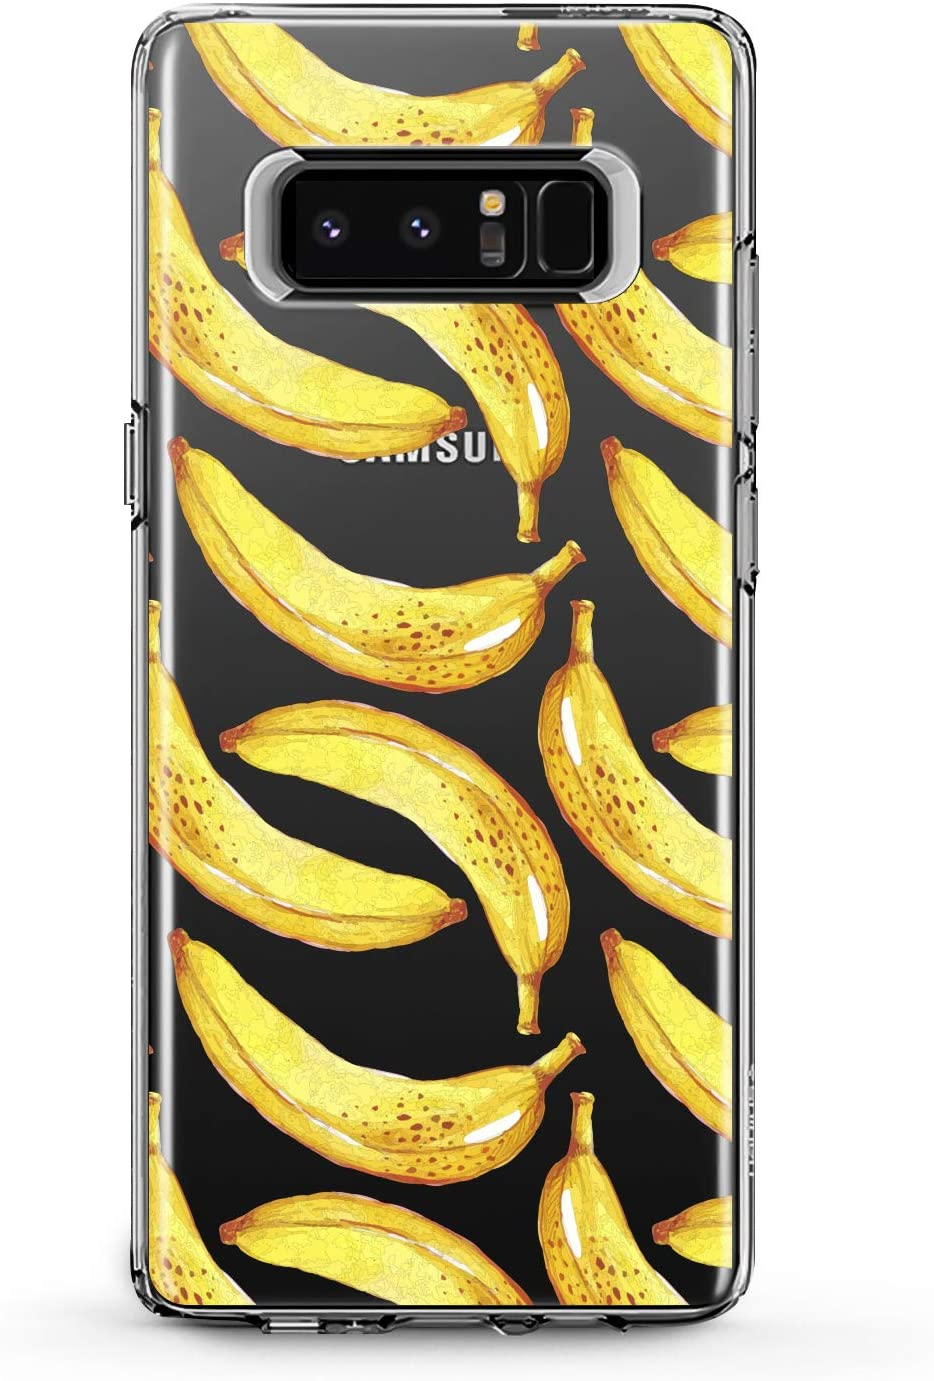 Anreda TPU Case Compatible with Samsung Galaxy J8 J7 Prime J6 Plus J5 J4 Core J2 Juicy Soft Clear Cute Design Slim fit Flexible Unique Gift Silicone Banana Girl Tropical Sweet Cover Smooth Women Print